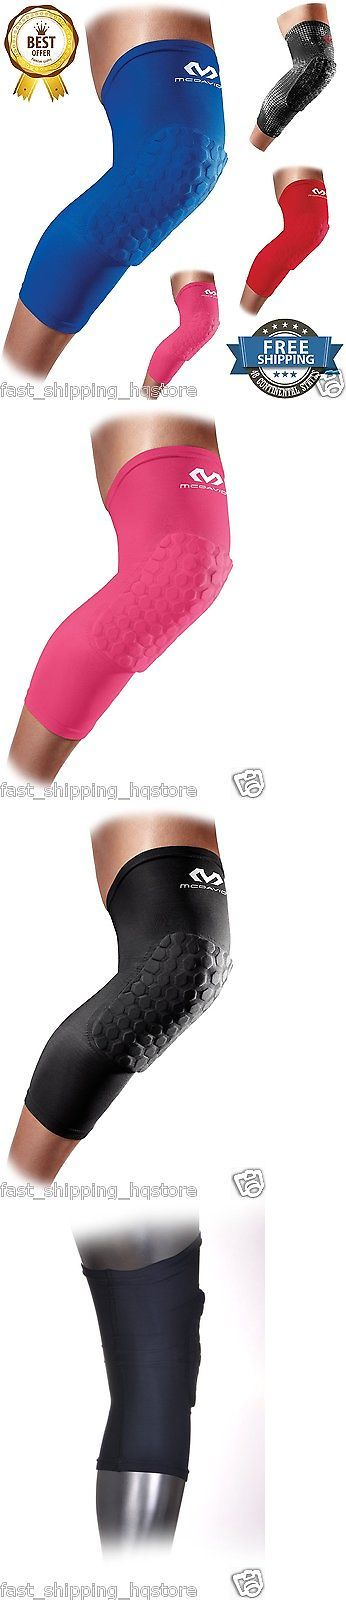 Protective Gear 158969: Mcdavid Knee Pad Hex Padded Compression Leg Protecting Support Help Elbow Sleeve BUY IT NOW ONLY: $35.39